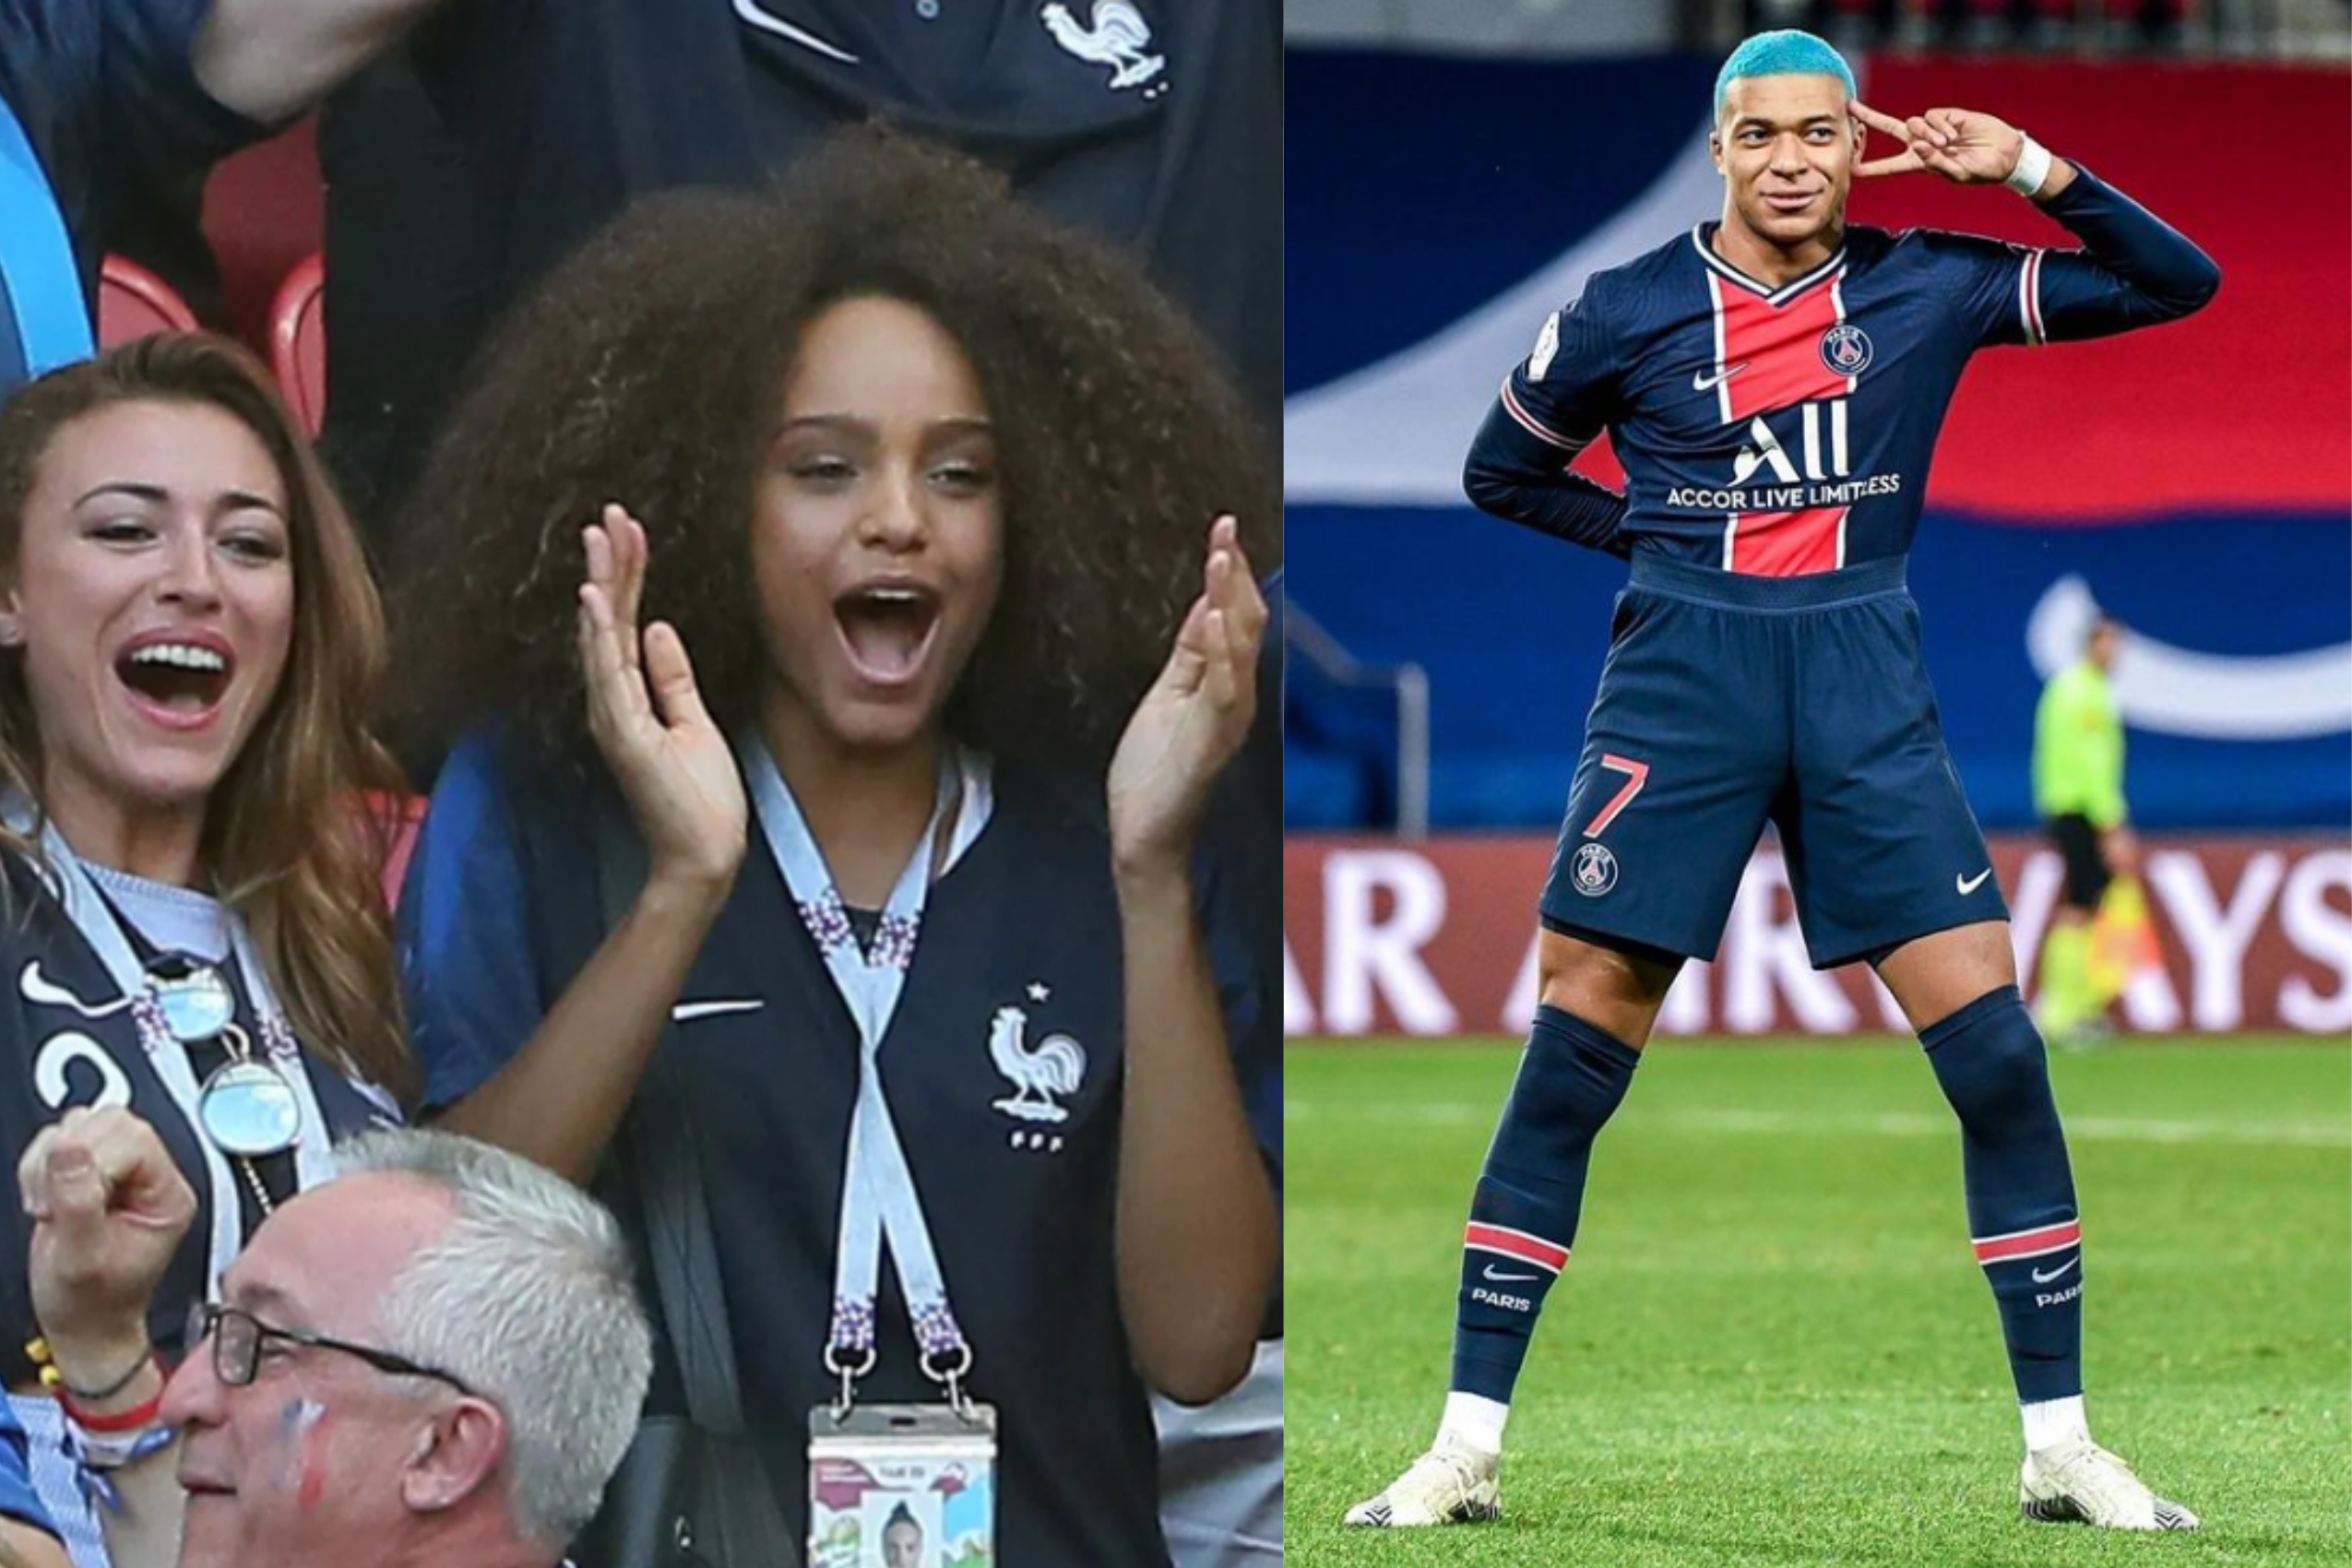 Kylian Mbappe Girlfriend - Alicia Aylies